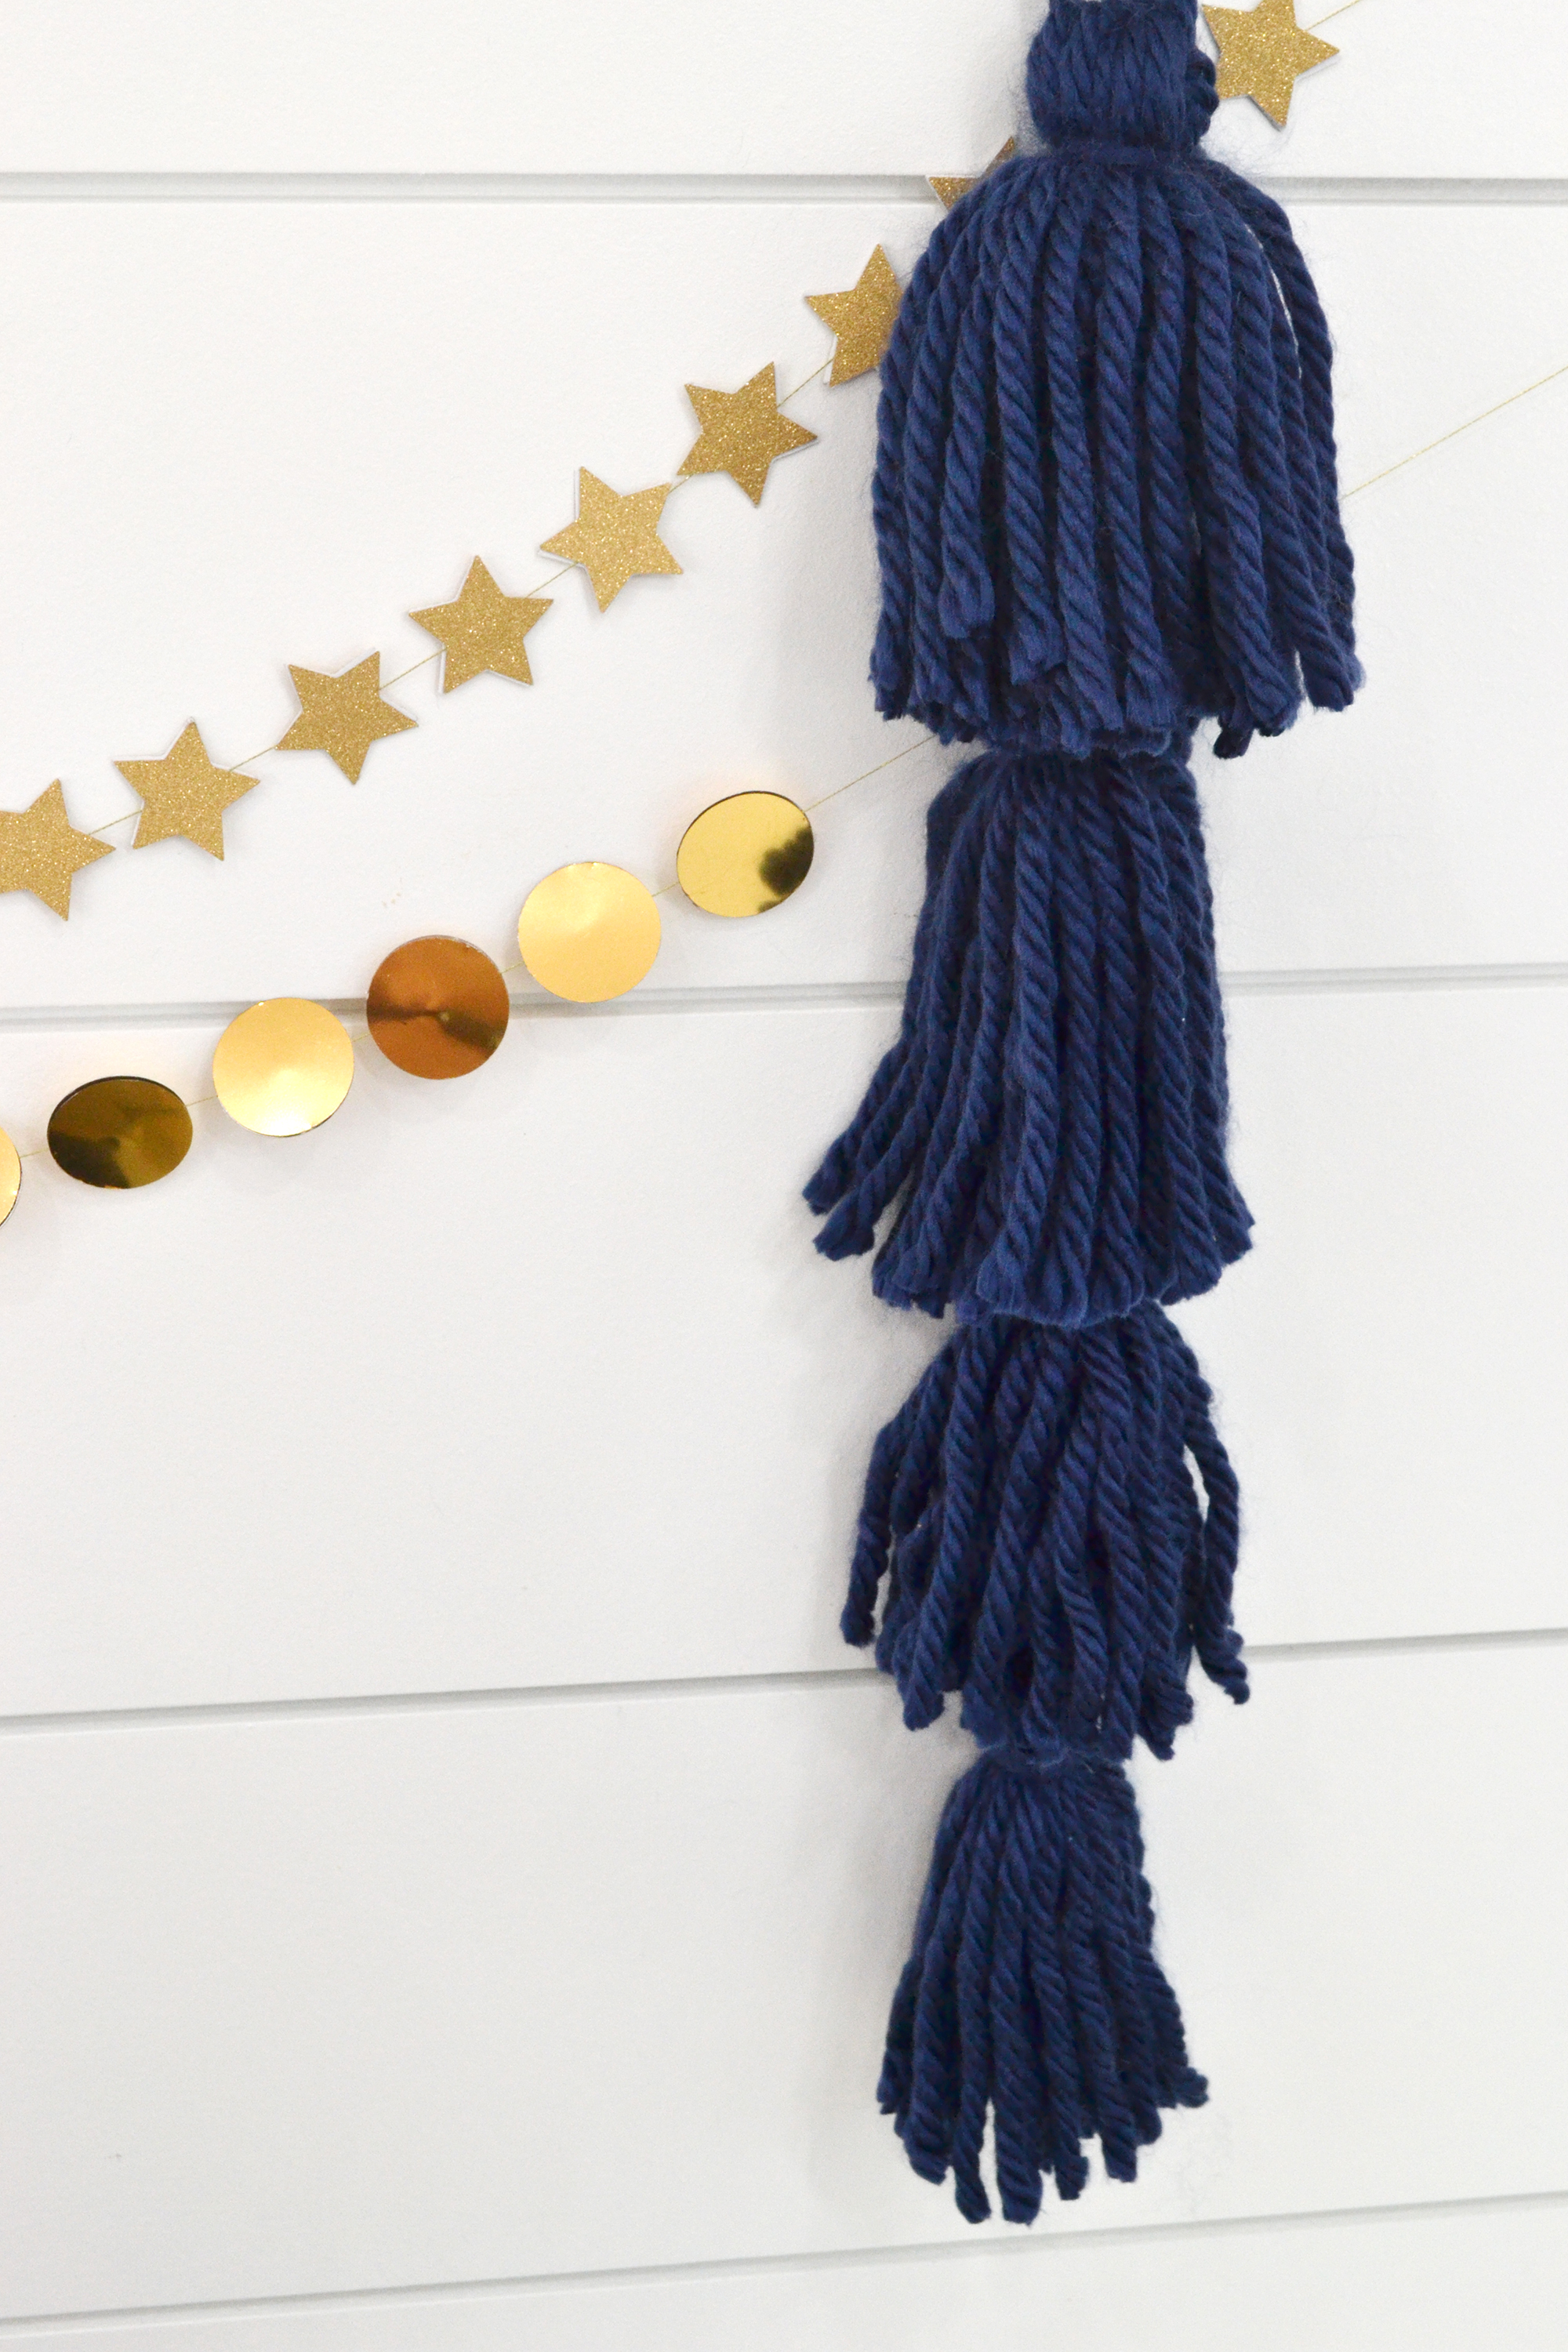 Waterfall Tassel Garland by Aly Dosdall for We R Memory Keepers